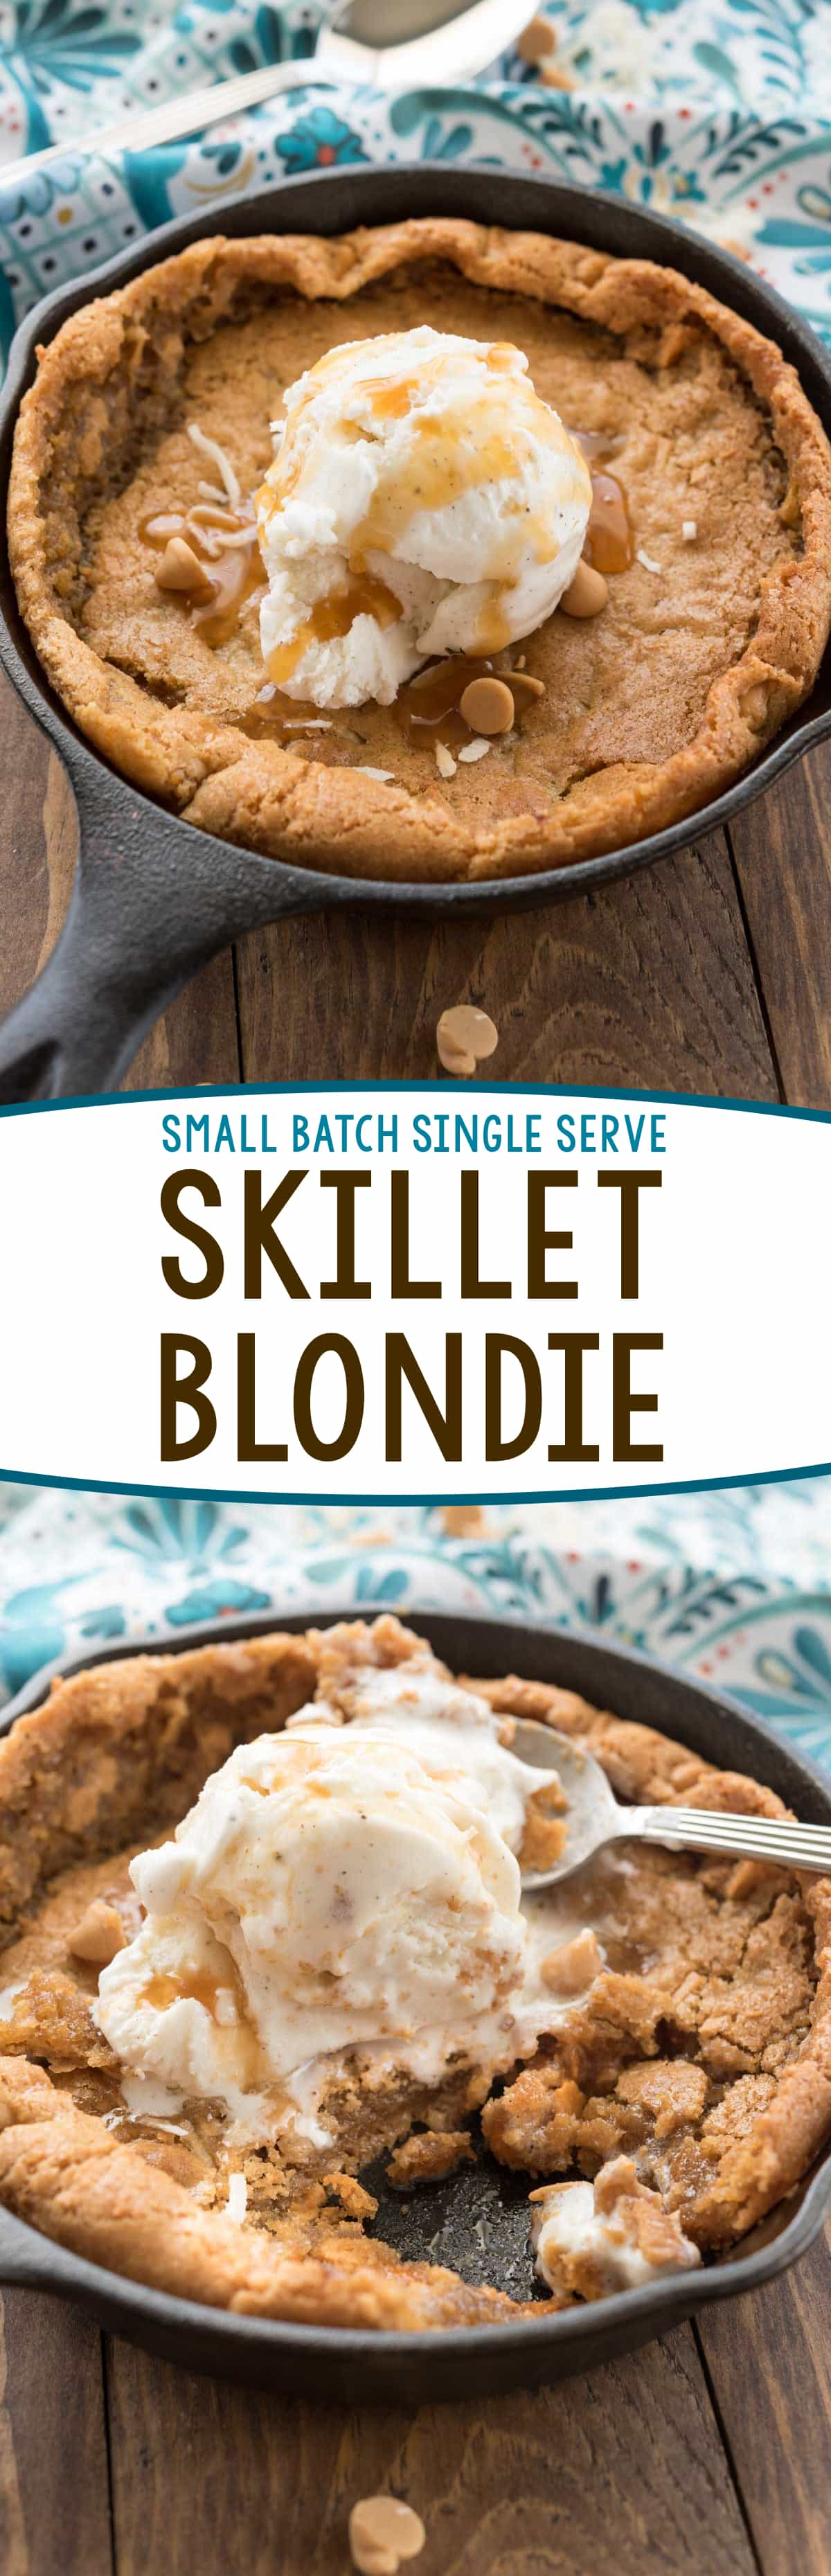 Small Batch Skillet Blondie - this easy blondie recipe is made for two! It mixes up in just a few minutes and is baked in a small pan or cast iron skillet. Top with ice cream for a single serve dessert!